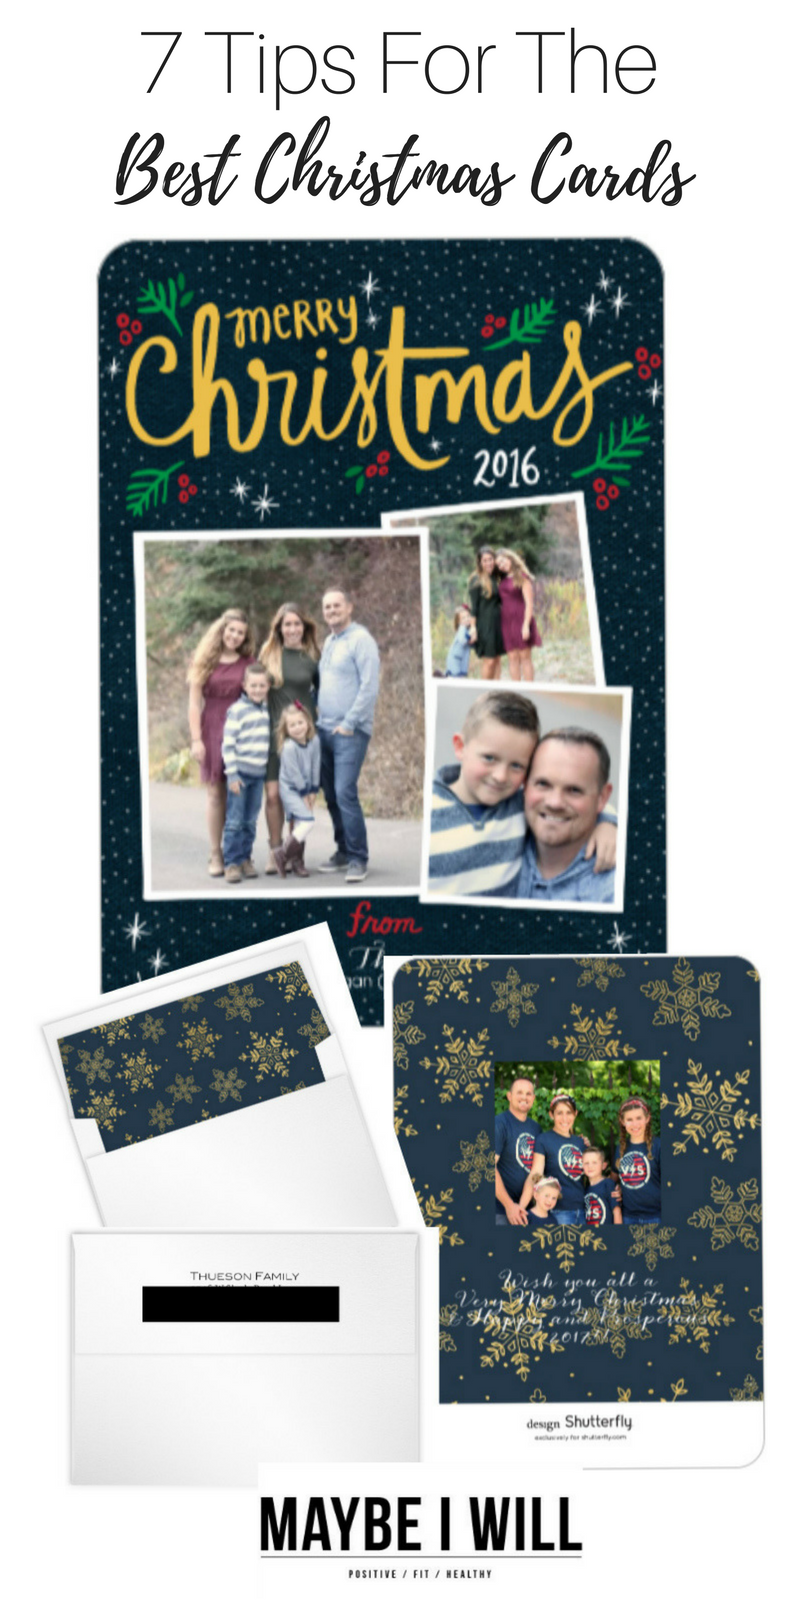 7 Tips For The Best Christmas Cards!